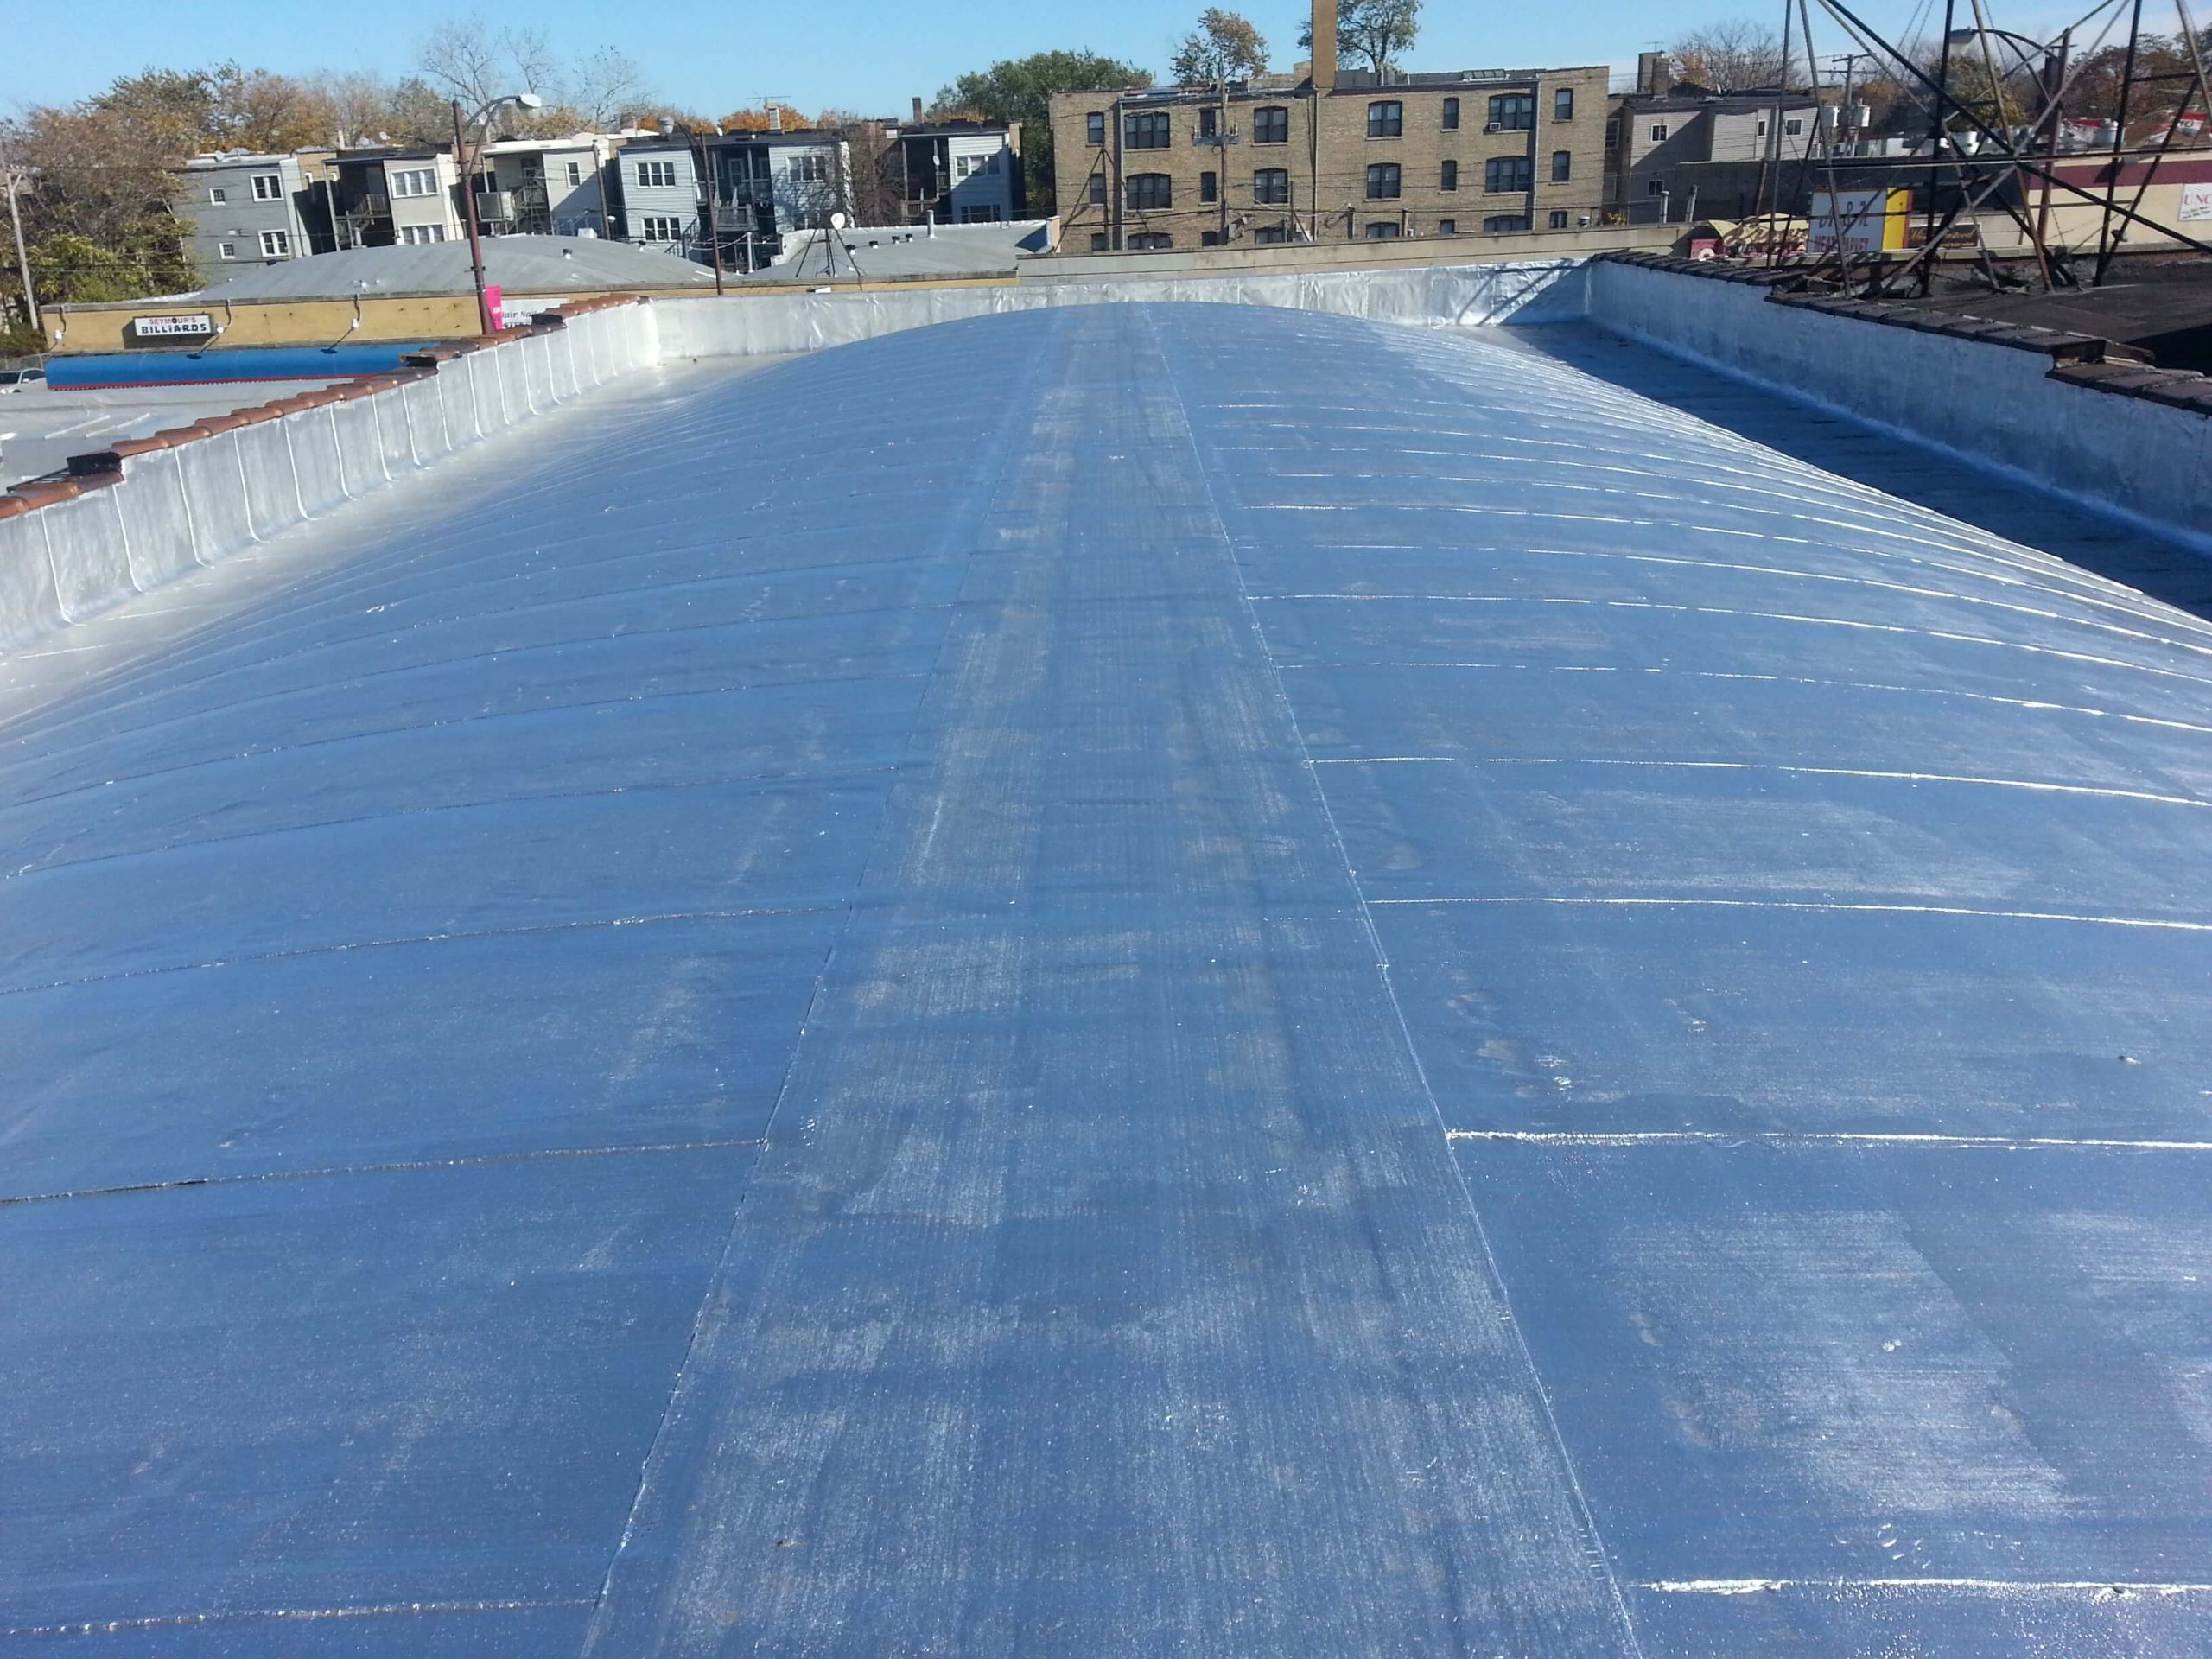 Commercial Modified Bitumen Barrel Flat Roof installation and replacement for Commercial Property